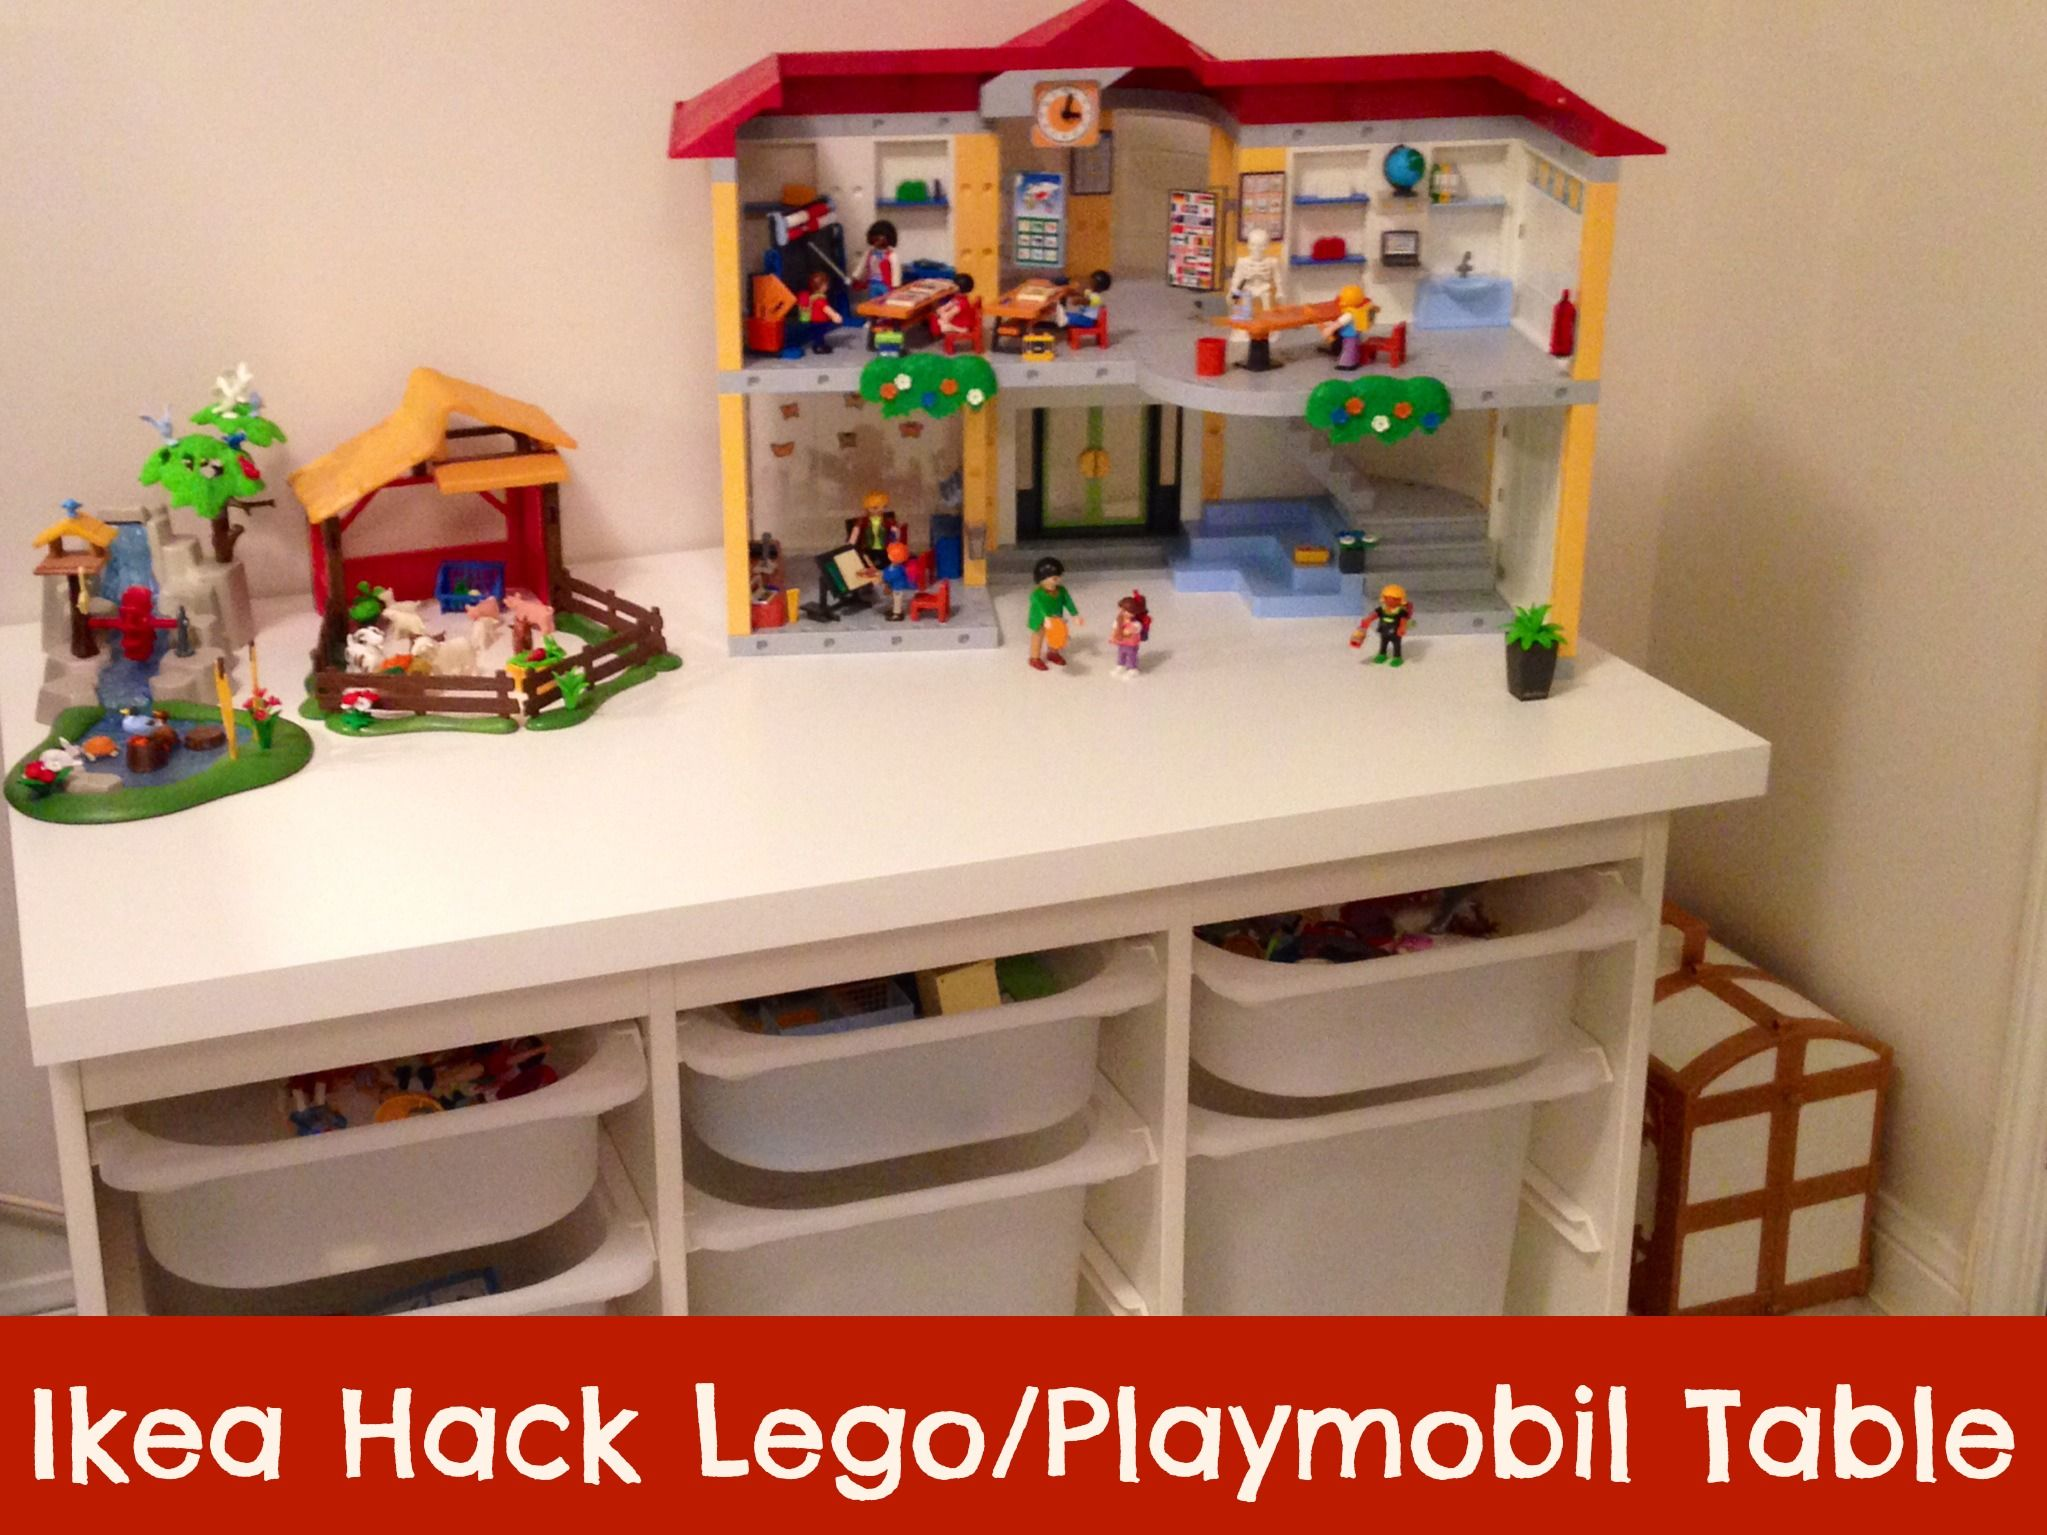 Meuble Pour Playmobil Ikea Hack Table Lego Playmobil Kid Room Spaces Ikea Hack Lego